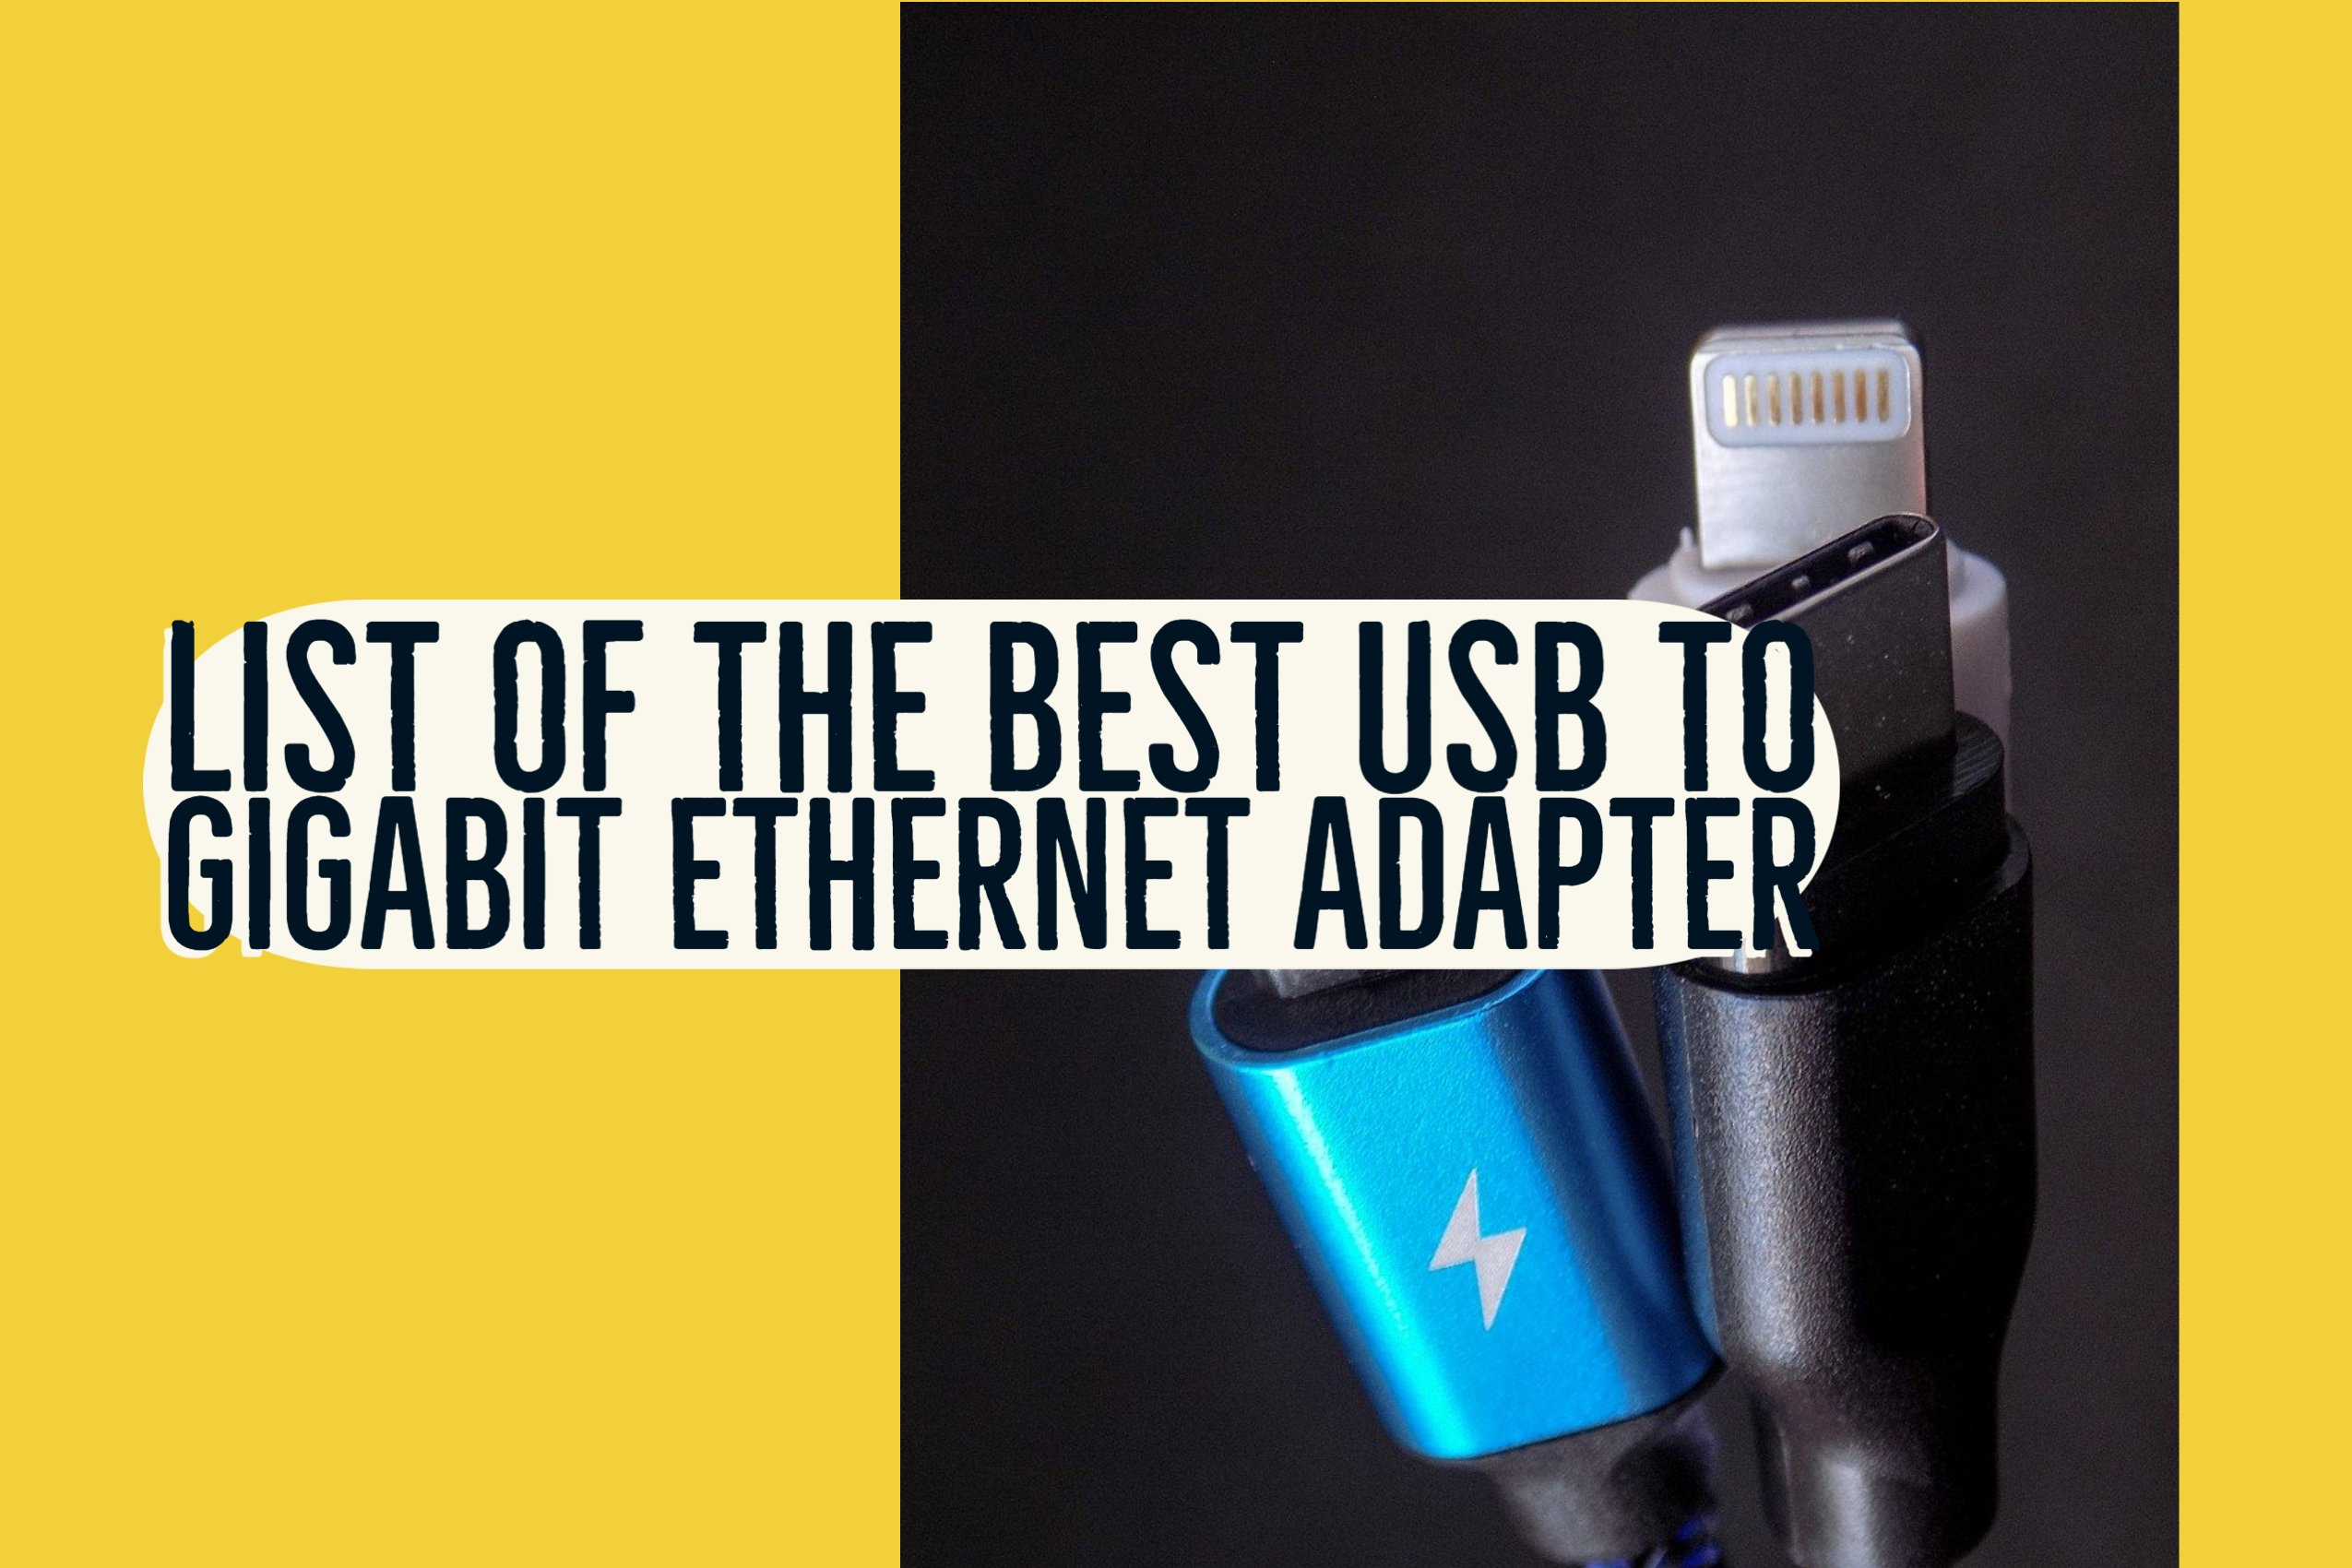 List of the Best USB to Gigabit Ethernet Adapter